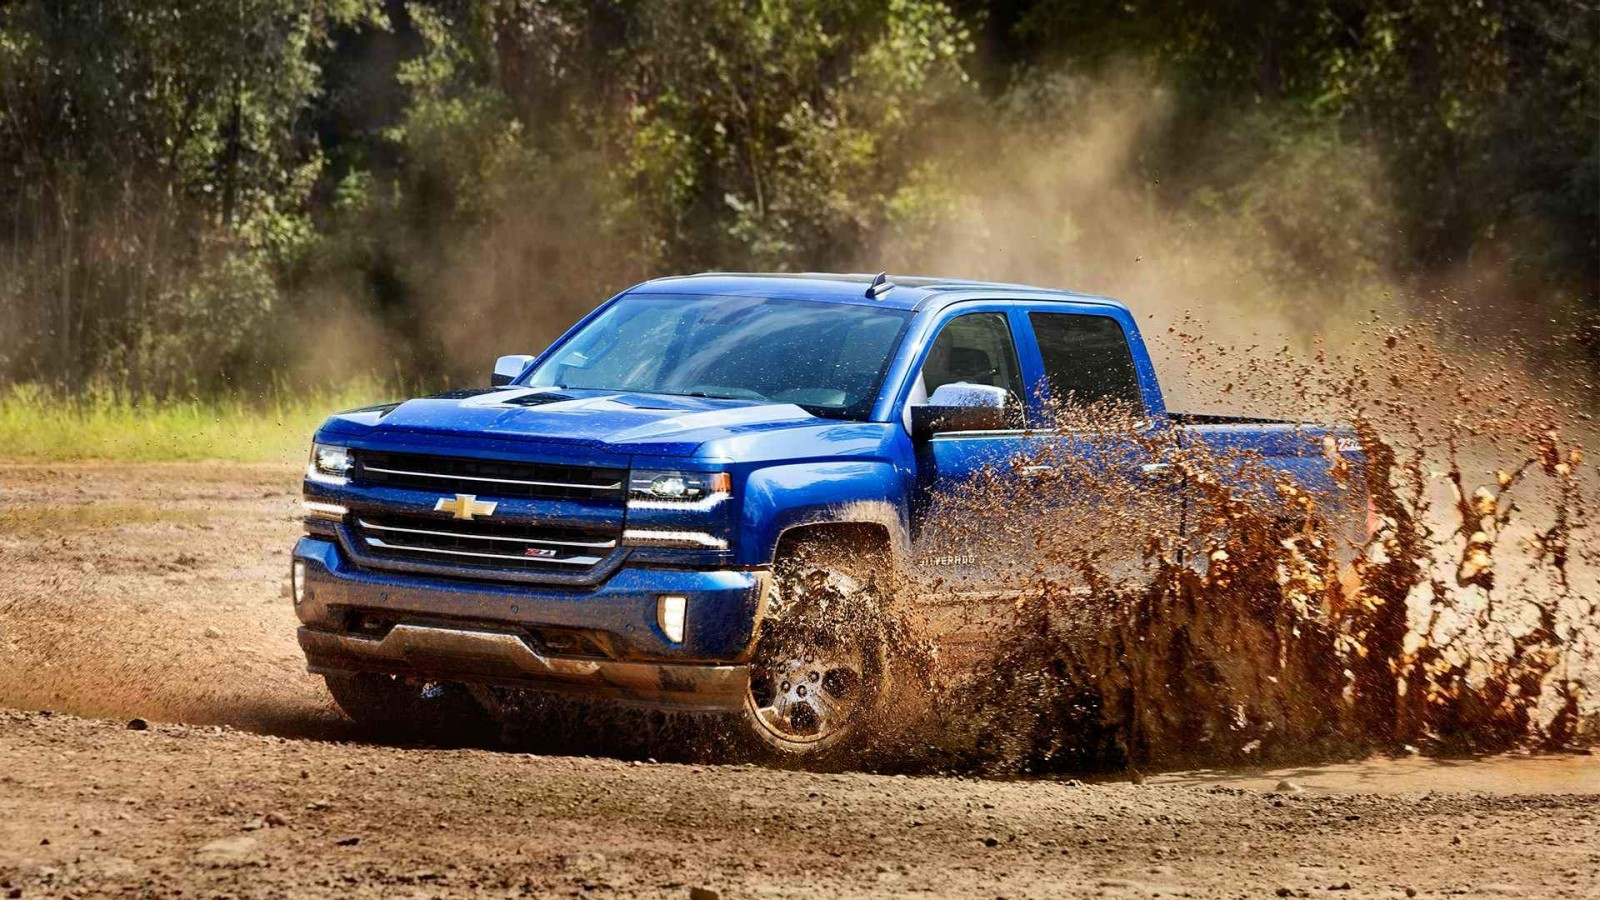 2016 Chevy Silverado 1500 near Washington, DC